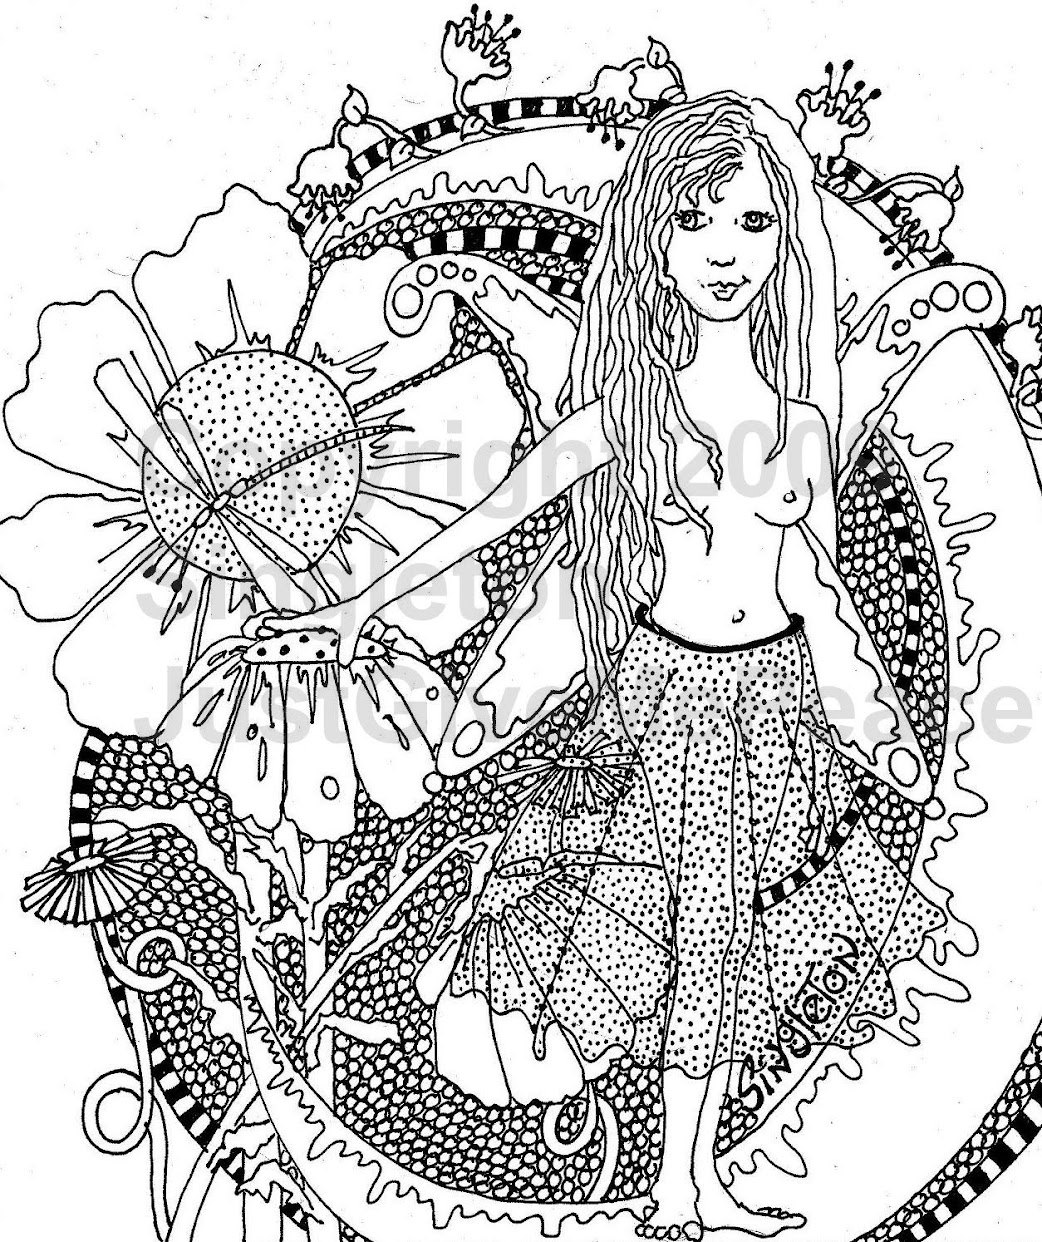 Hippie symbols coloring pages for Hippie coloring book pages